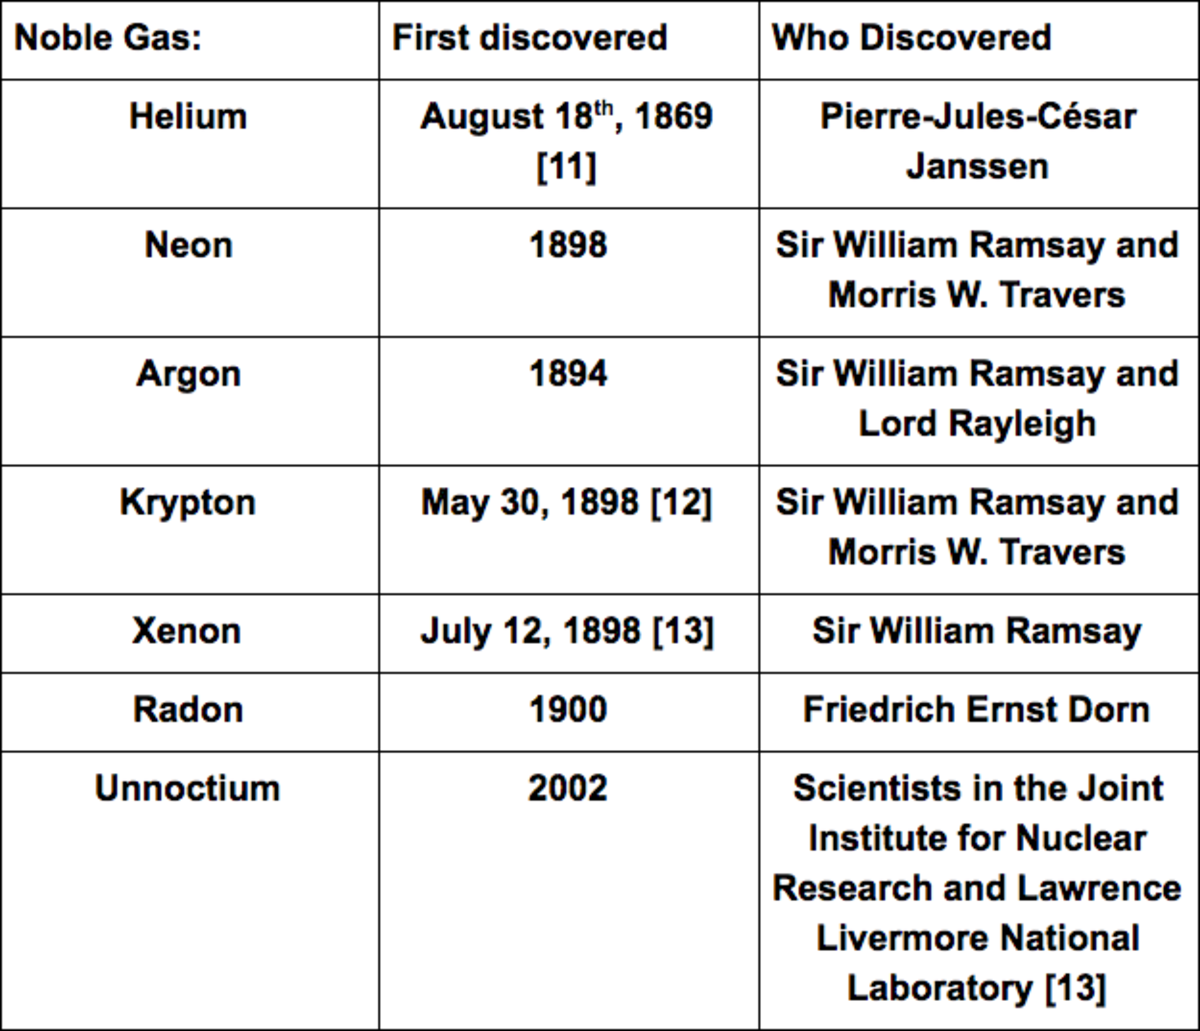 A table that summarizes the year and person who discovered the noble gases